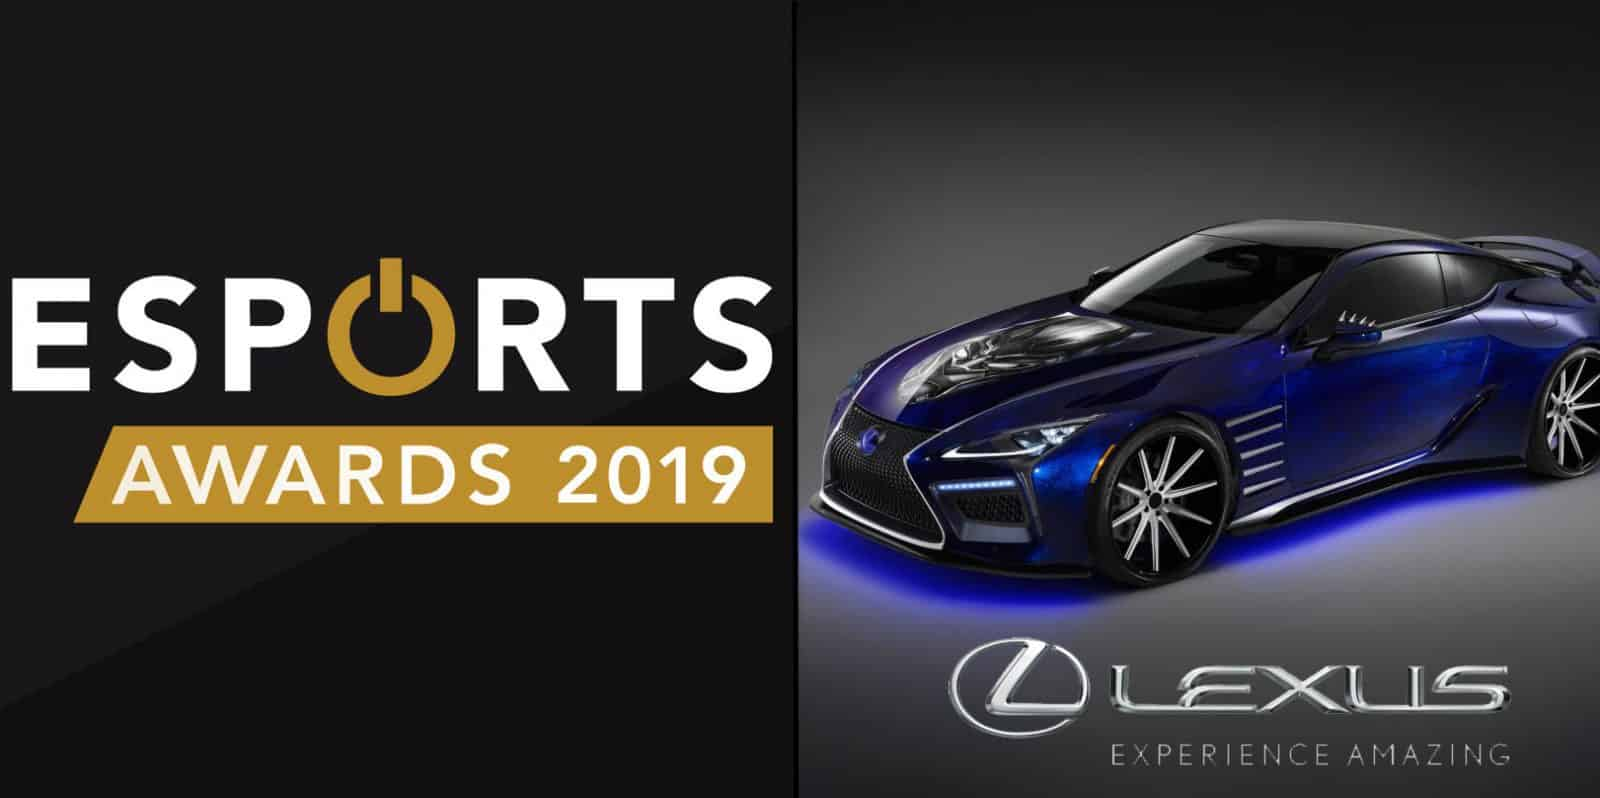 Esports Awards Partners with Lexus for Fourth Annual Event